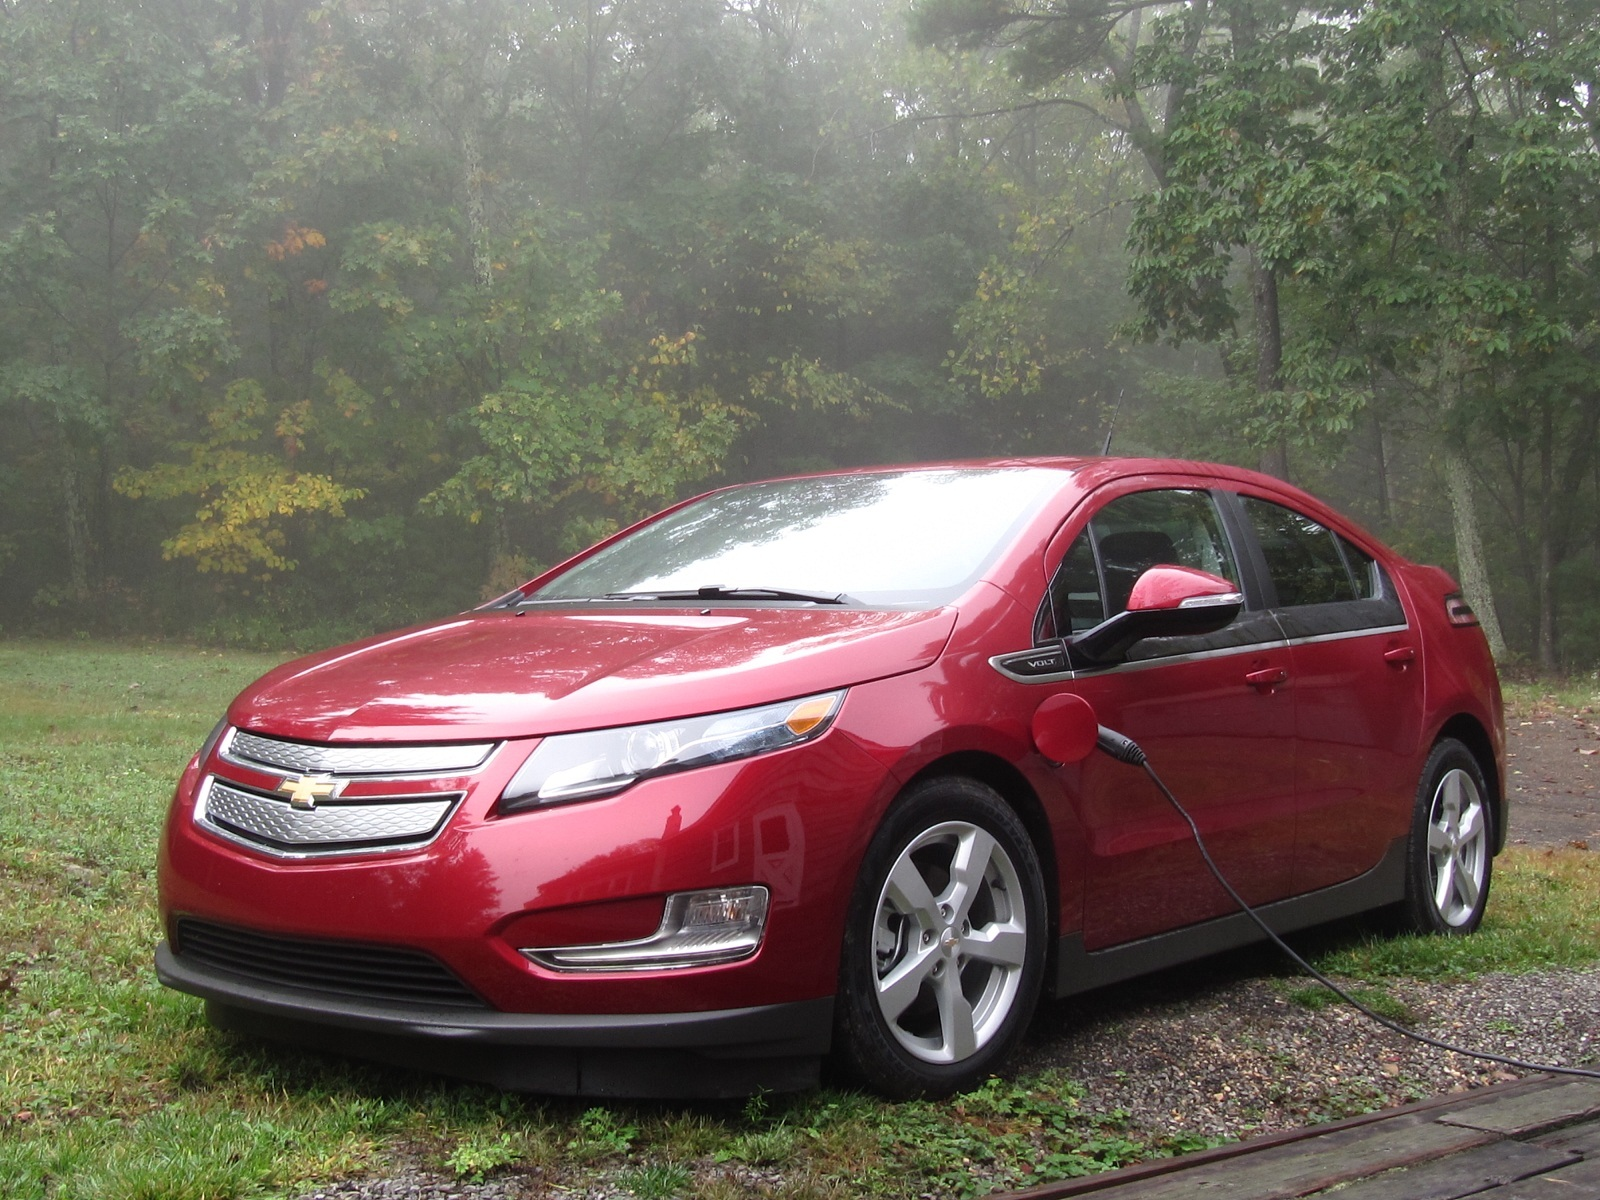 2013 chevy volt software update required to avert delayed charging glitch. Black Bedroom Furniture Sets. Home Design Ideas